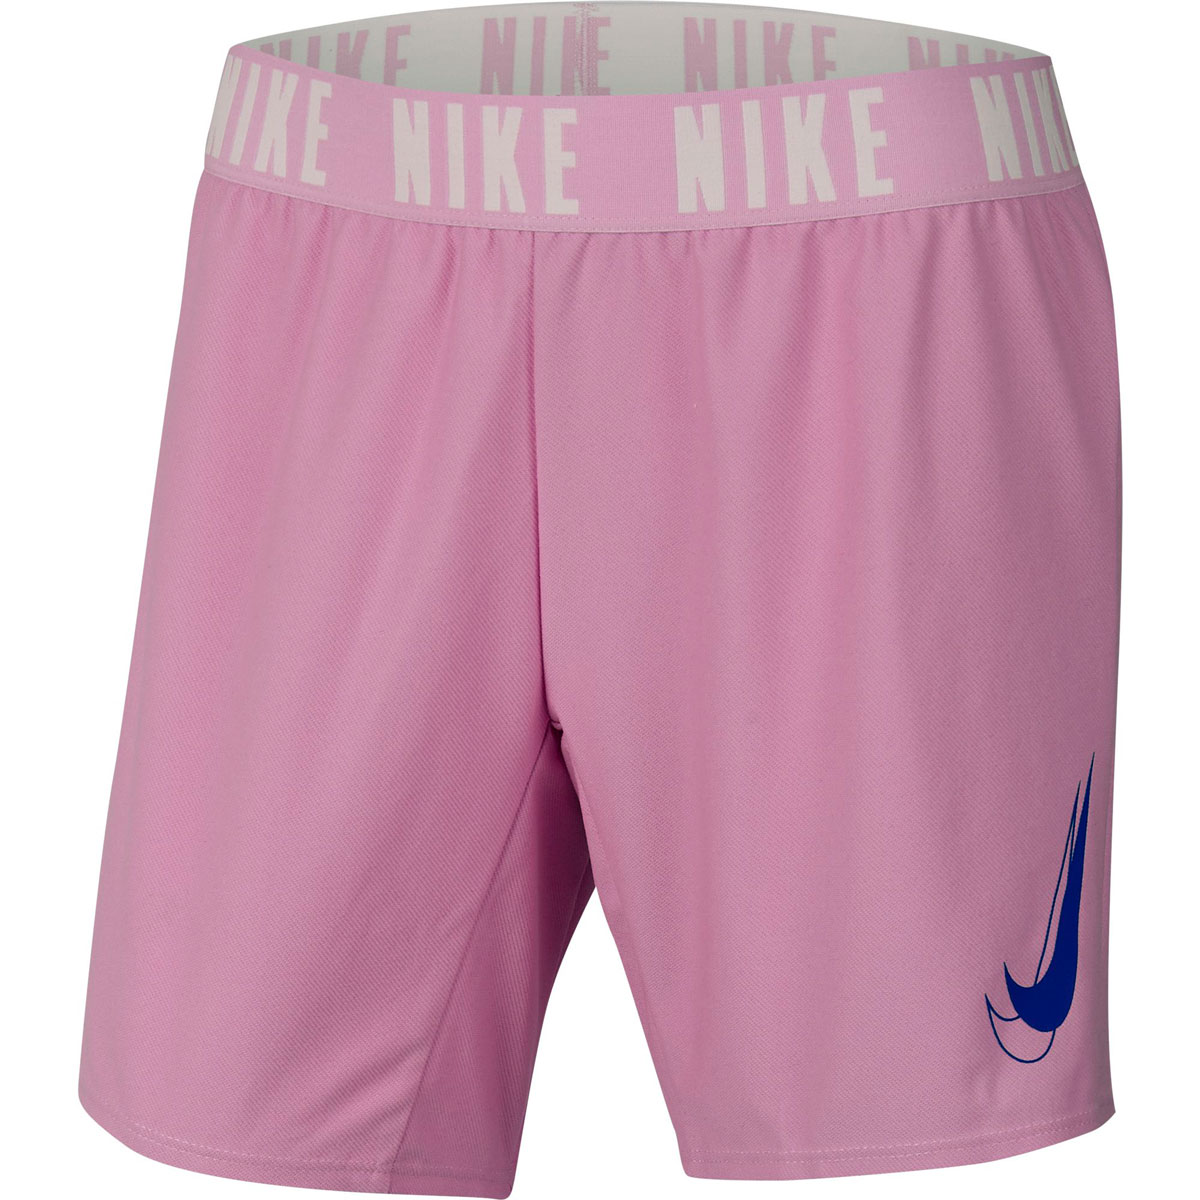 Girls' Dri-Fit Trophy Graphic Training Shorts, Pastel Pink,Theatrical, swatch